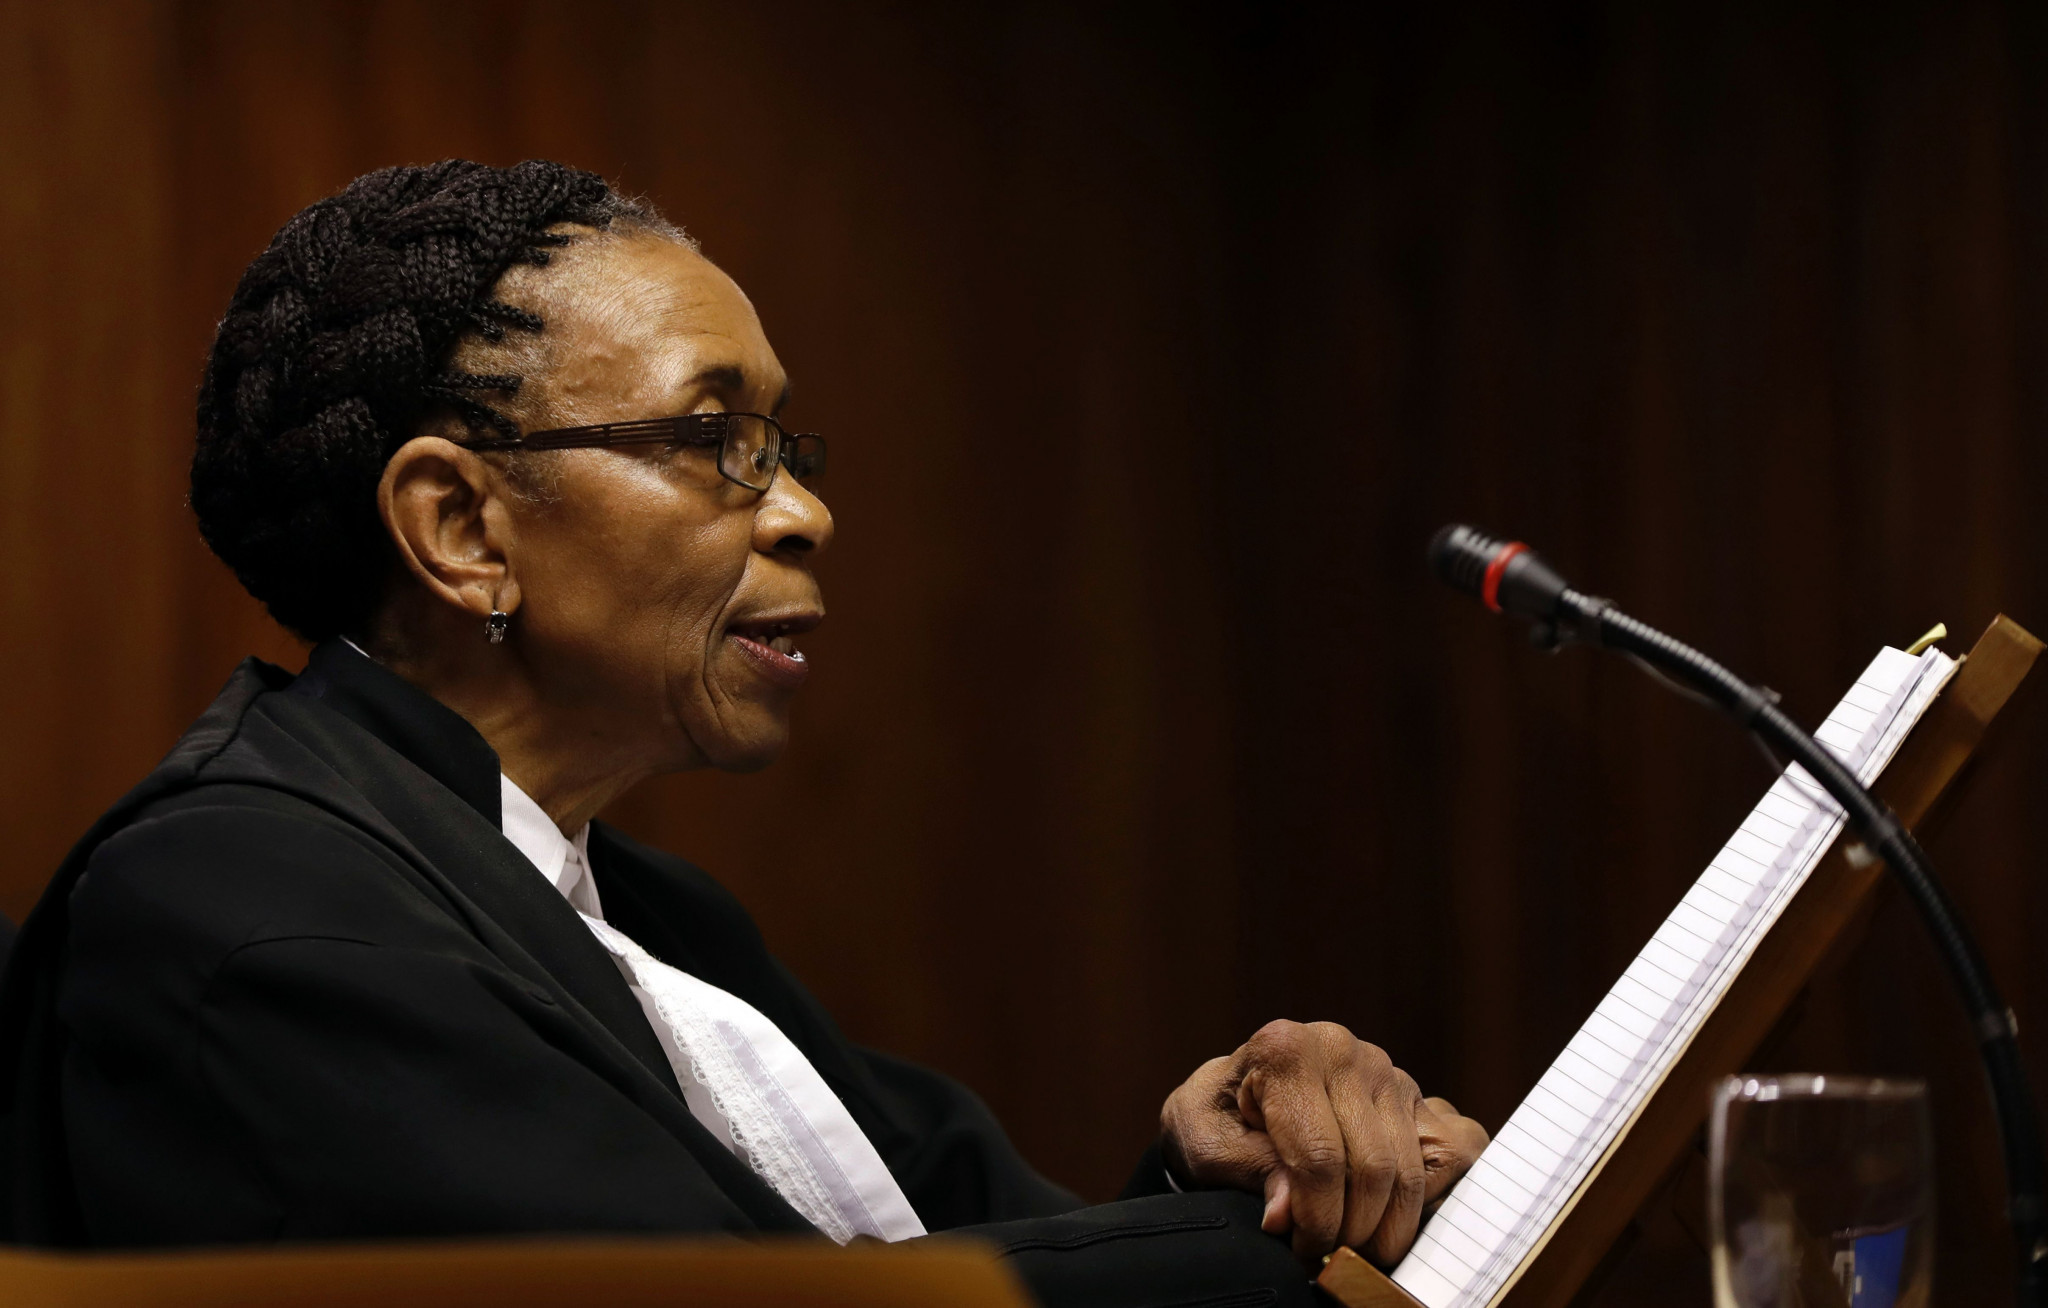 Judge Thokozile Masipa had initially sentenced Pistorius to five years for culpable homicide - the equivalent of manslaughter - in 2014 ©Getty Images